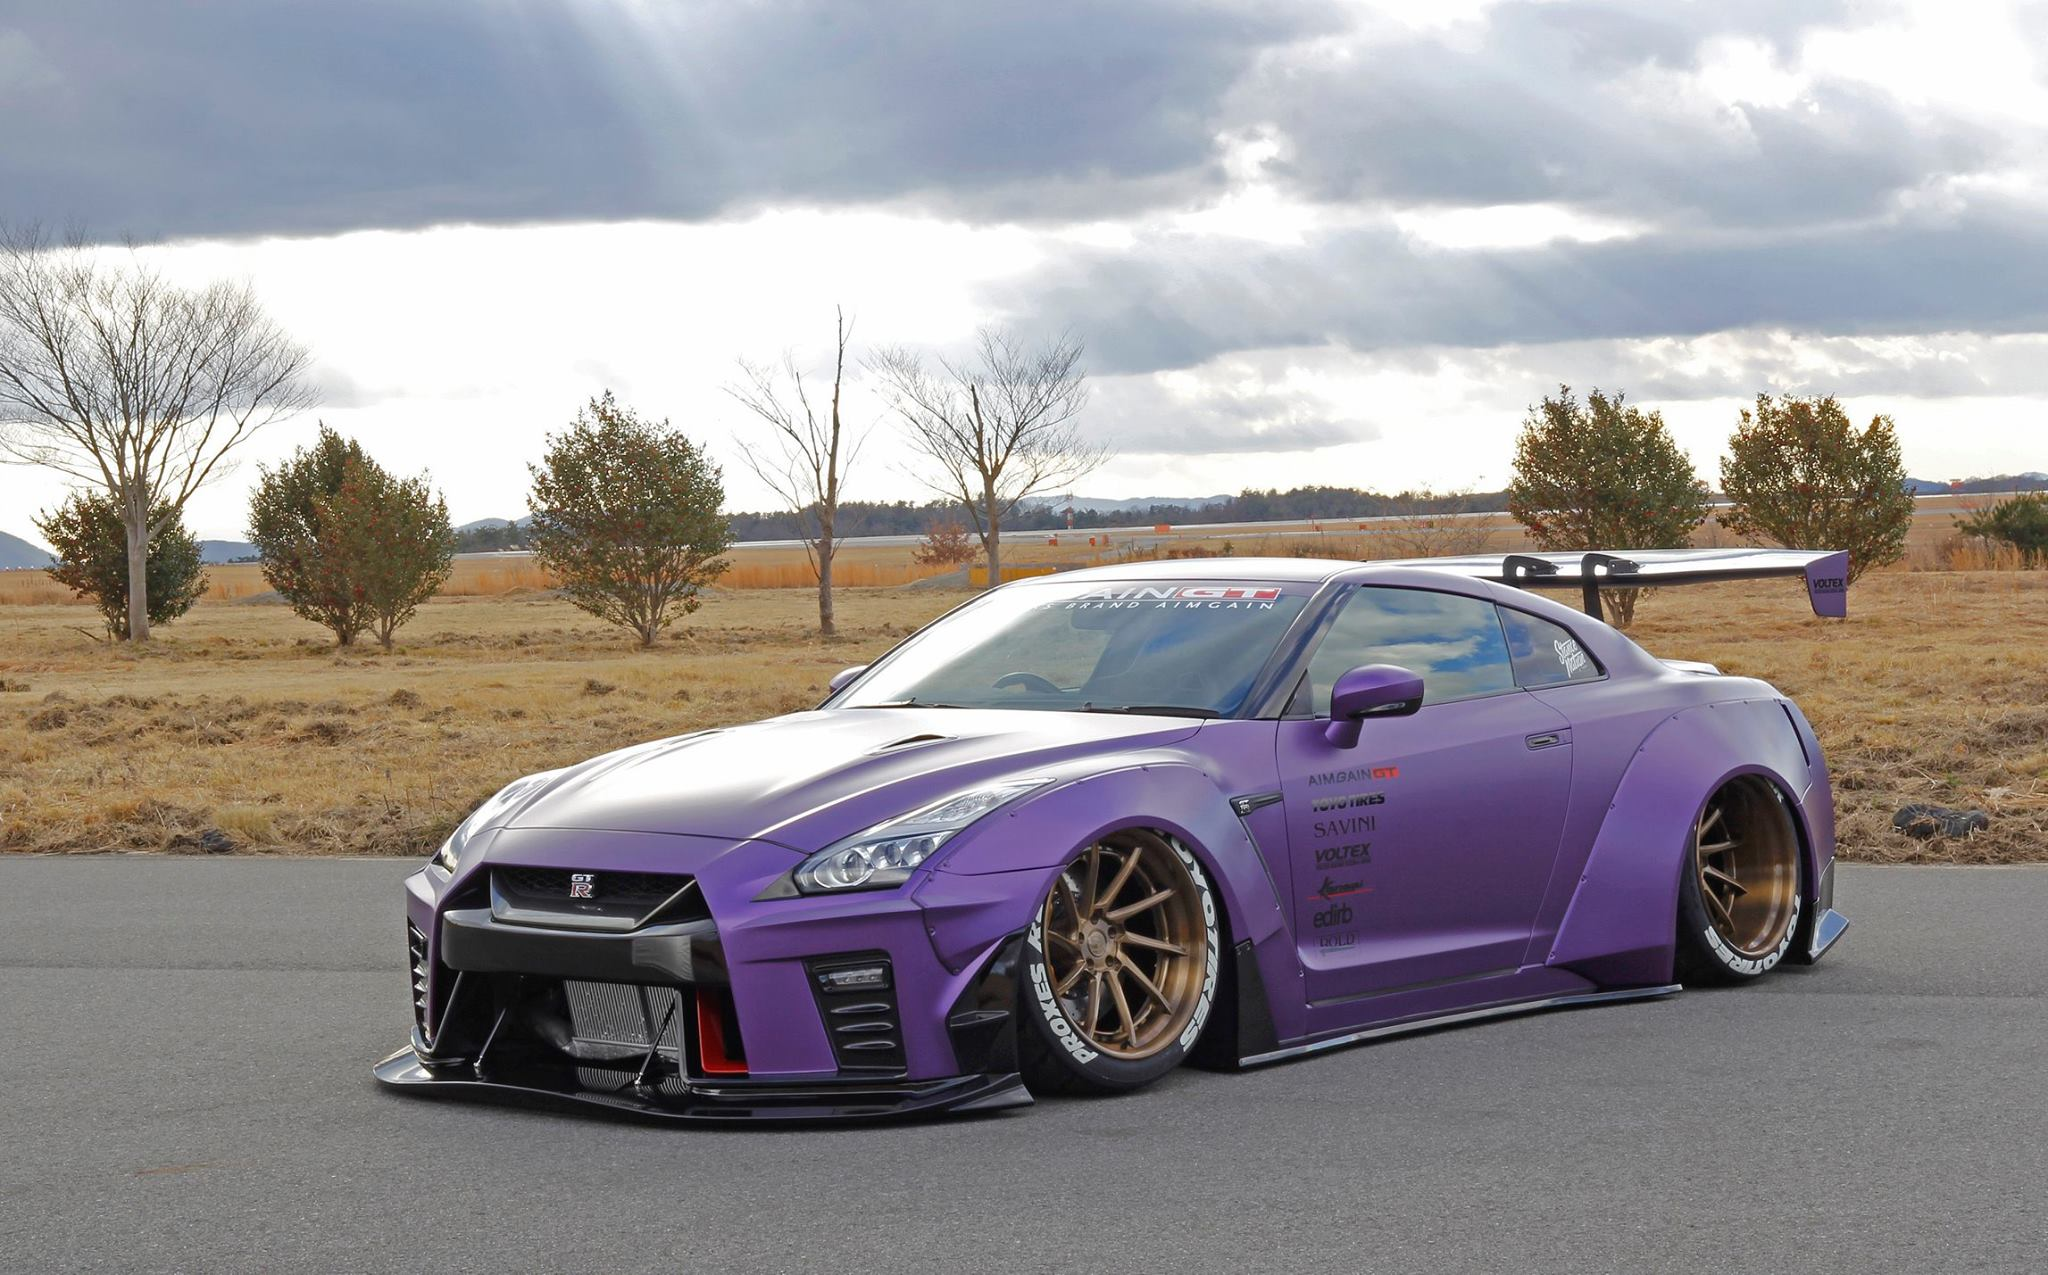 Toyota Gt 86 And Nissan Gt R Widebody Duo From Aimgain